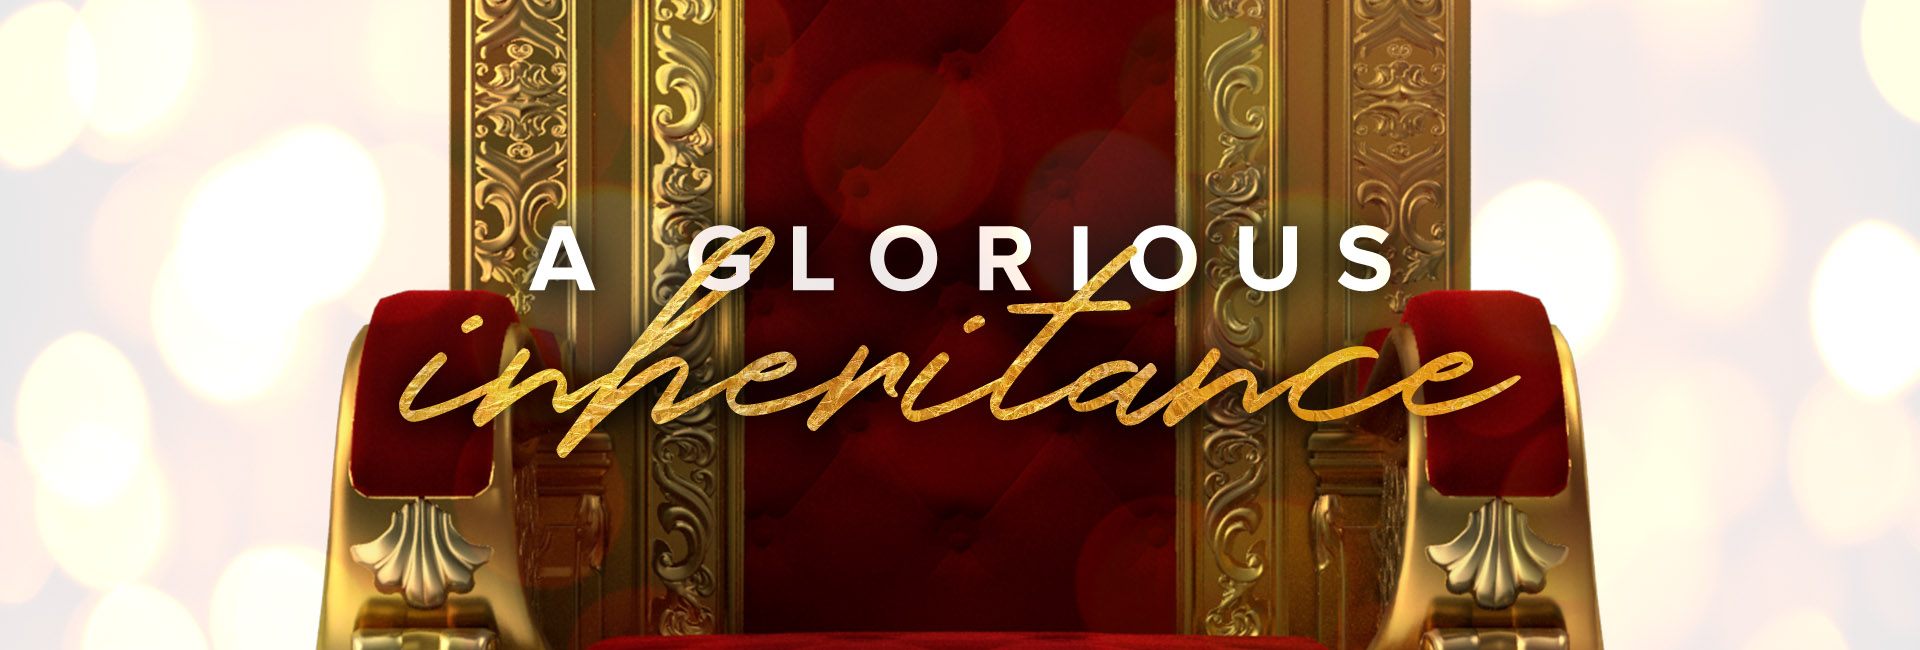 Glorious Inheritance